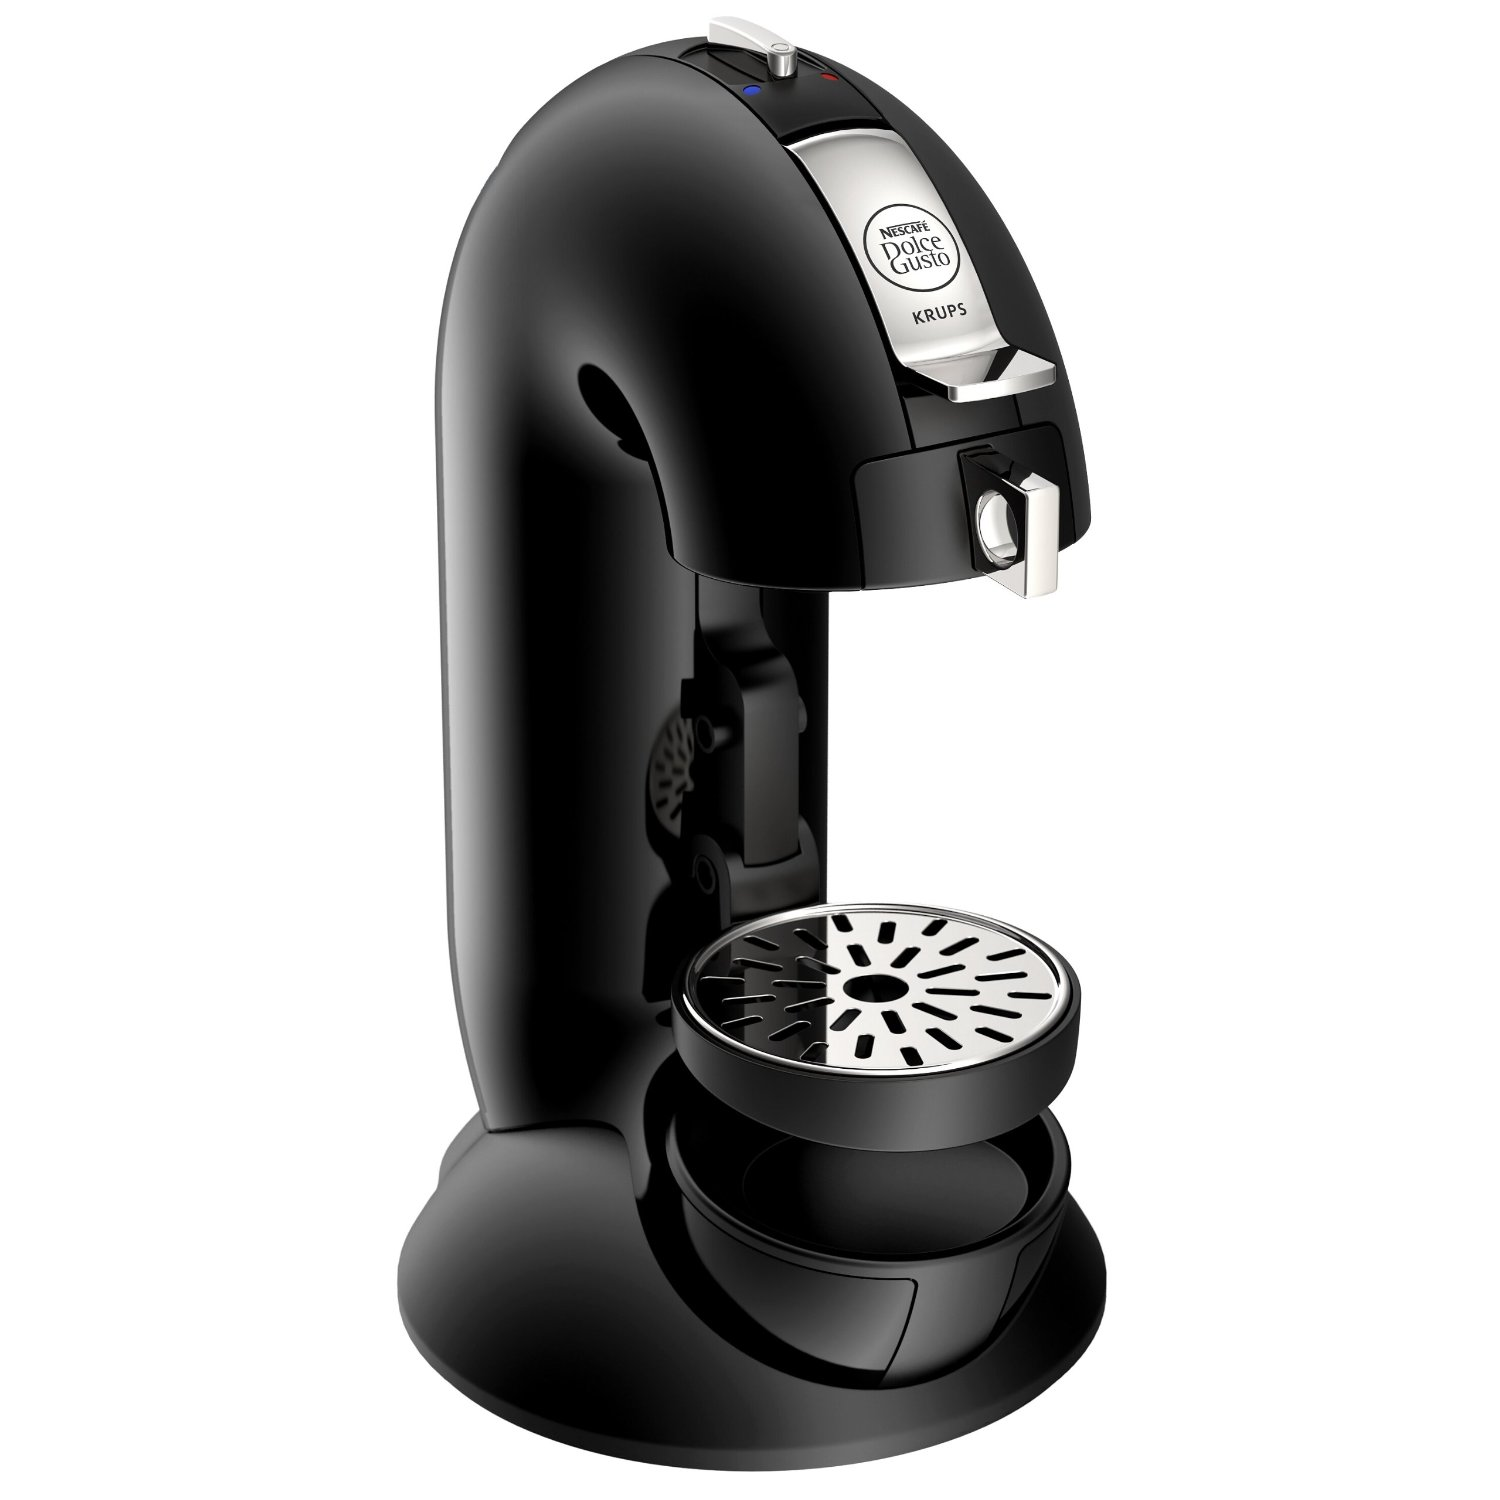 krups nescafe dolce gusto coffee maker 15 bar black